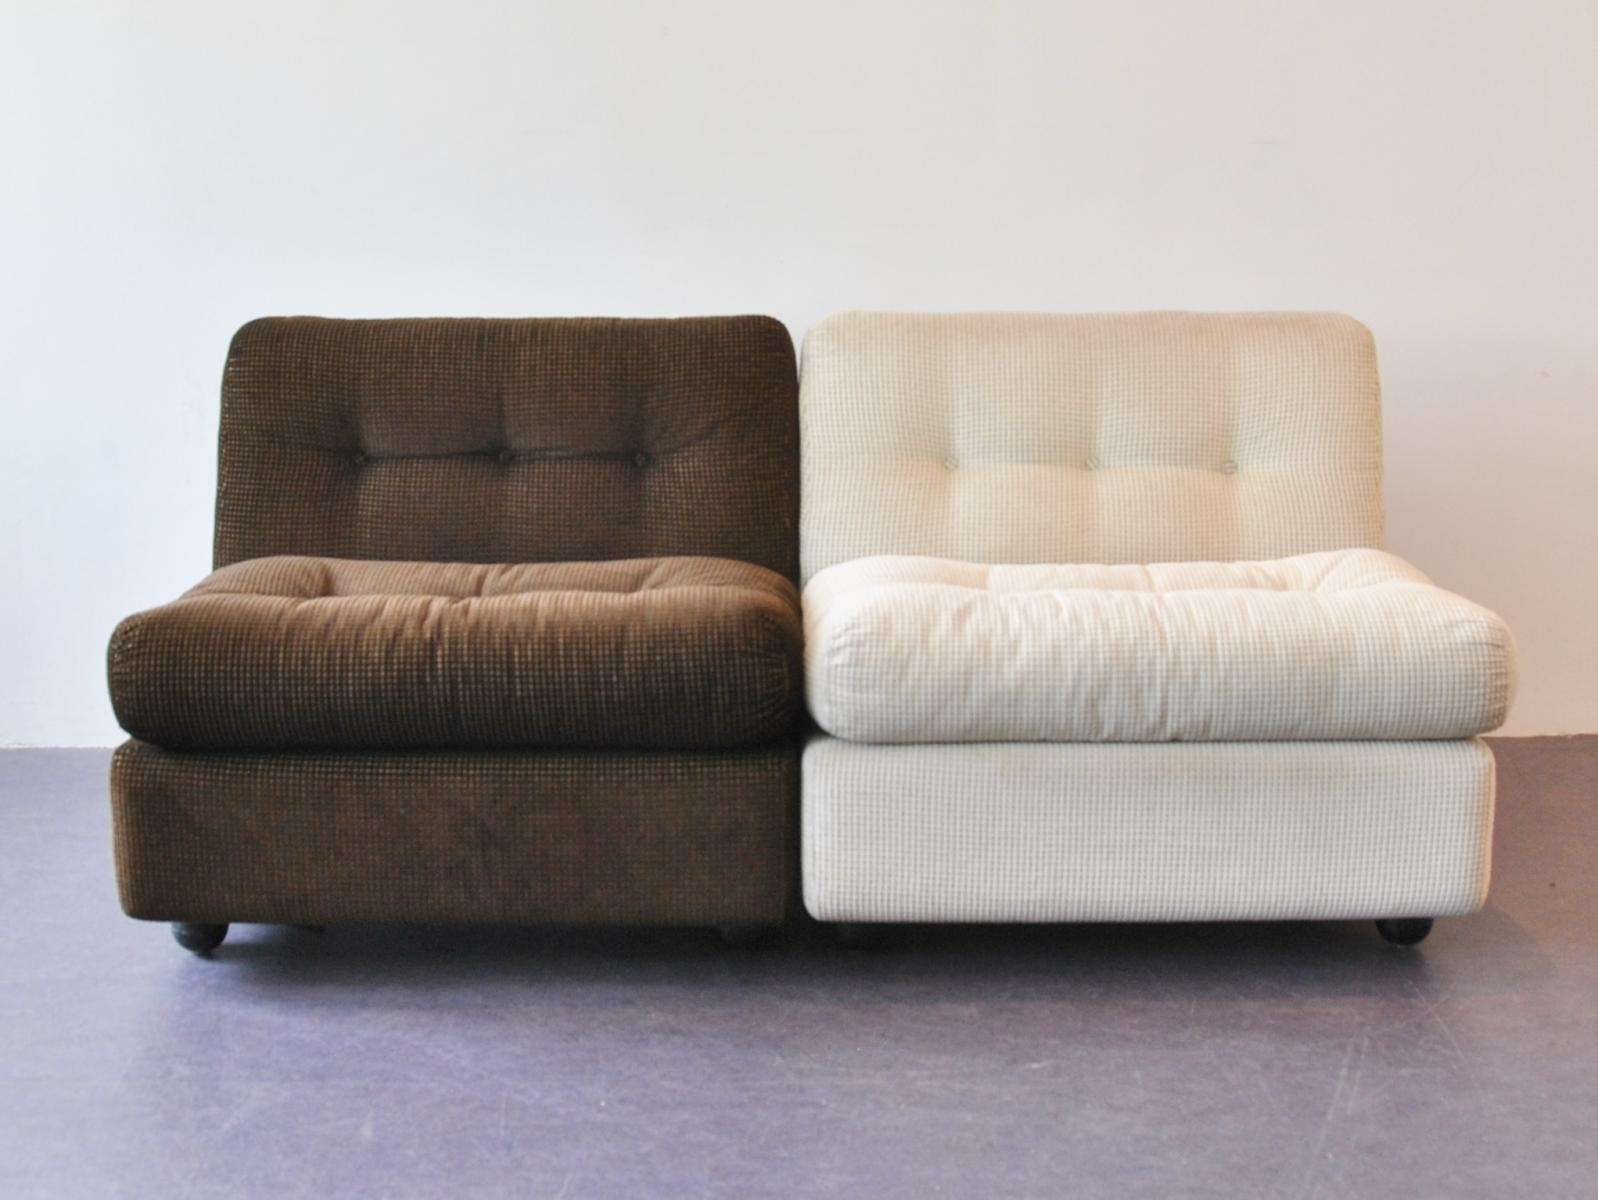 Amanta Easy Chairsmario Bellini For B&b Italia, Set Of 2 For Pertaining To Bellini Couches (View 8 of 20)